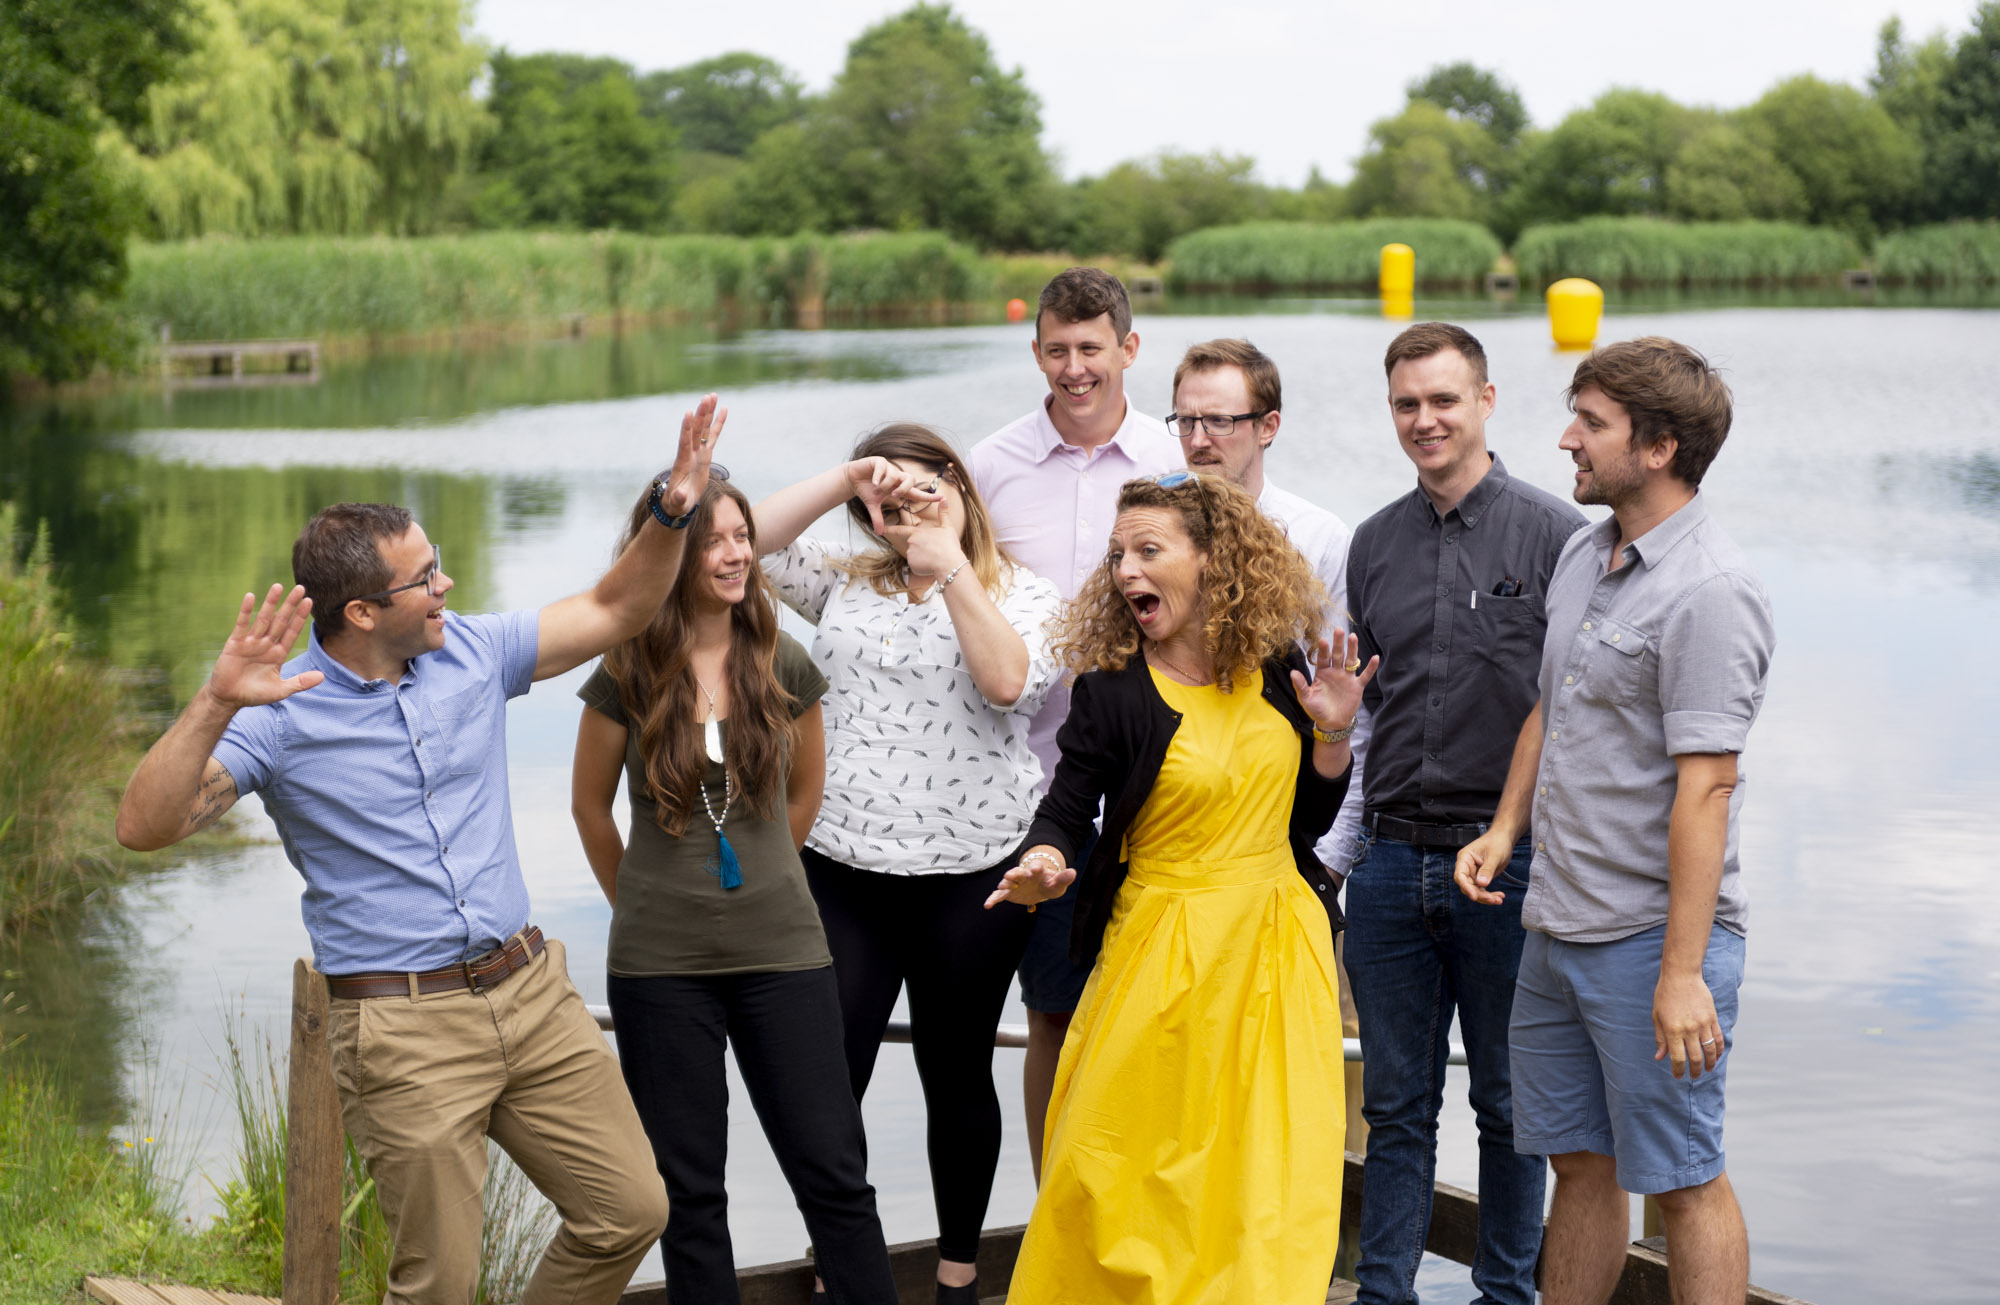 When you're doing a photo shoot with the Wharton team, make sure you're always ready for the shots before they pose for the sensible team shot!